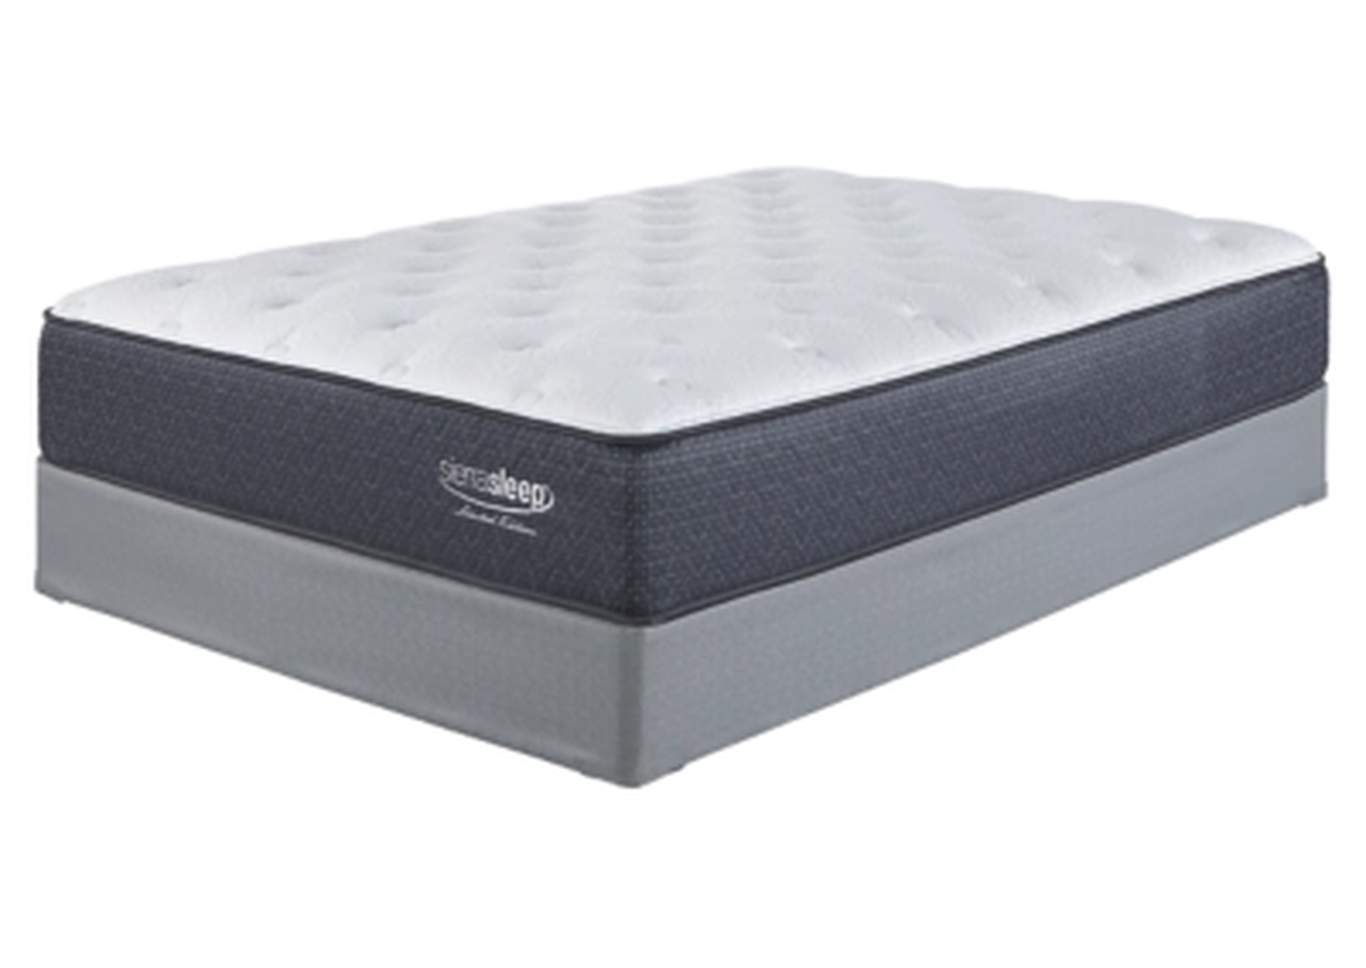 Limited Edition Plush White Queen Mattress,Sierra Sleep by Ashley